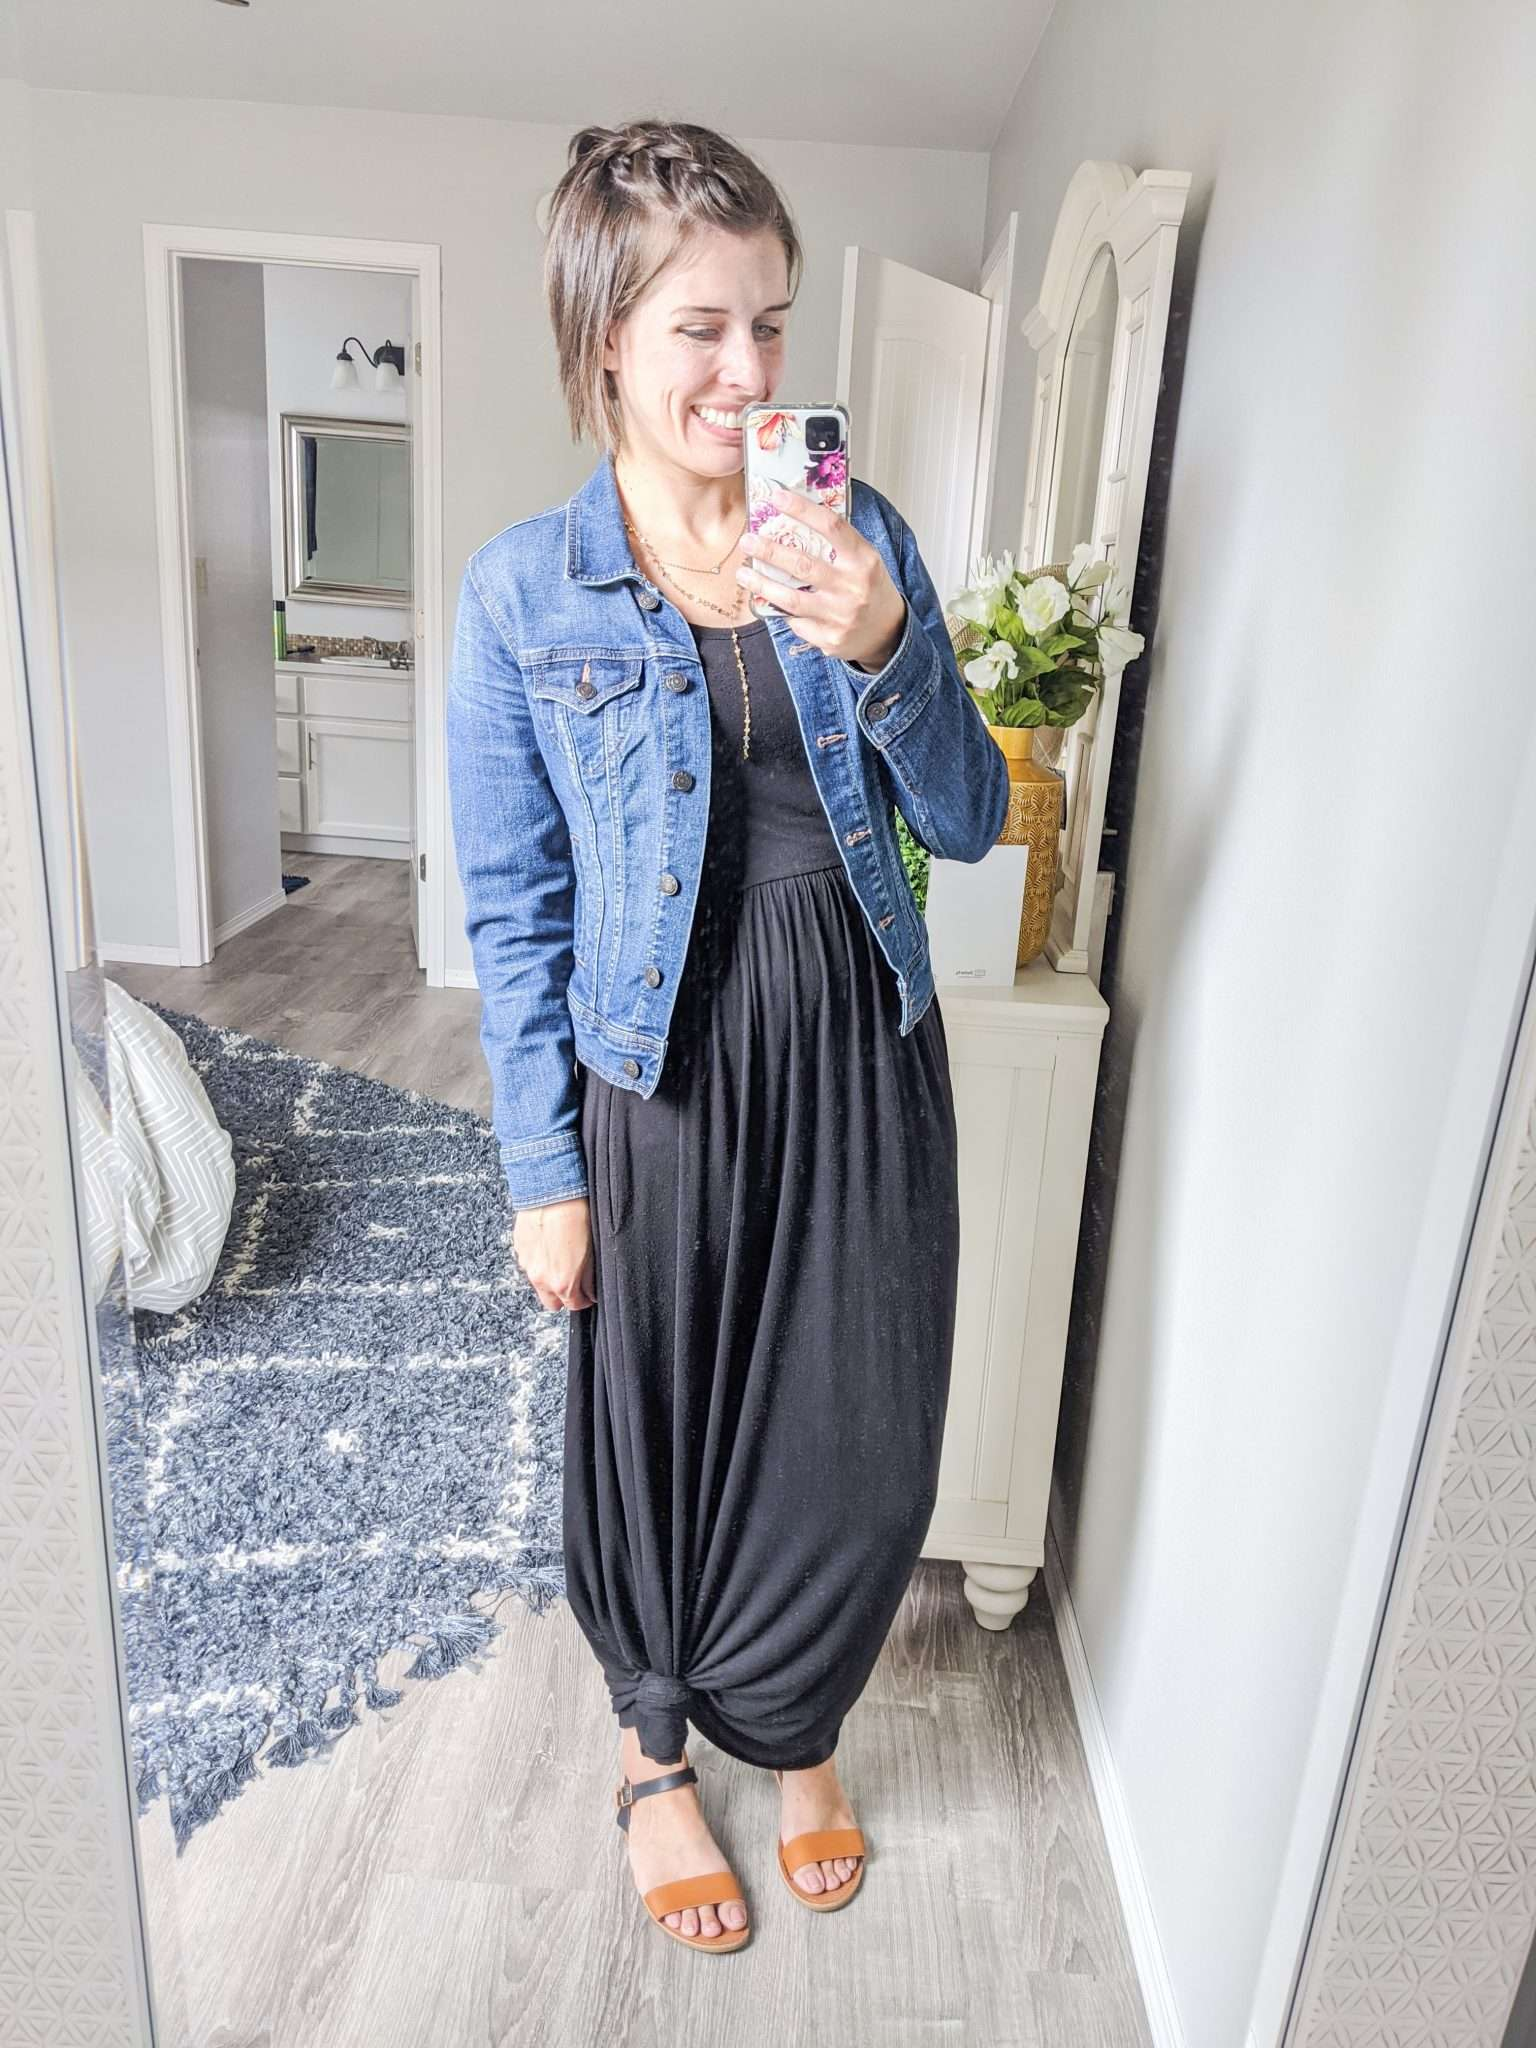 Summer to Fall transition outfits - How to transition summer clothes to fall- Use that maxi dress